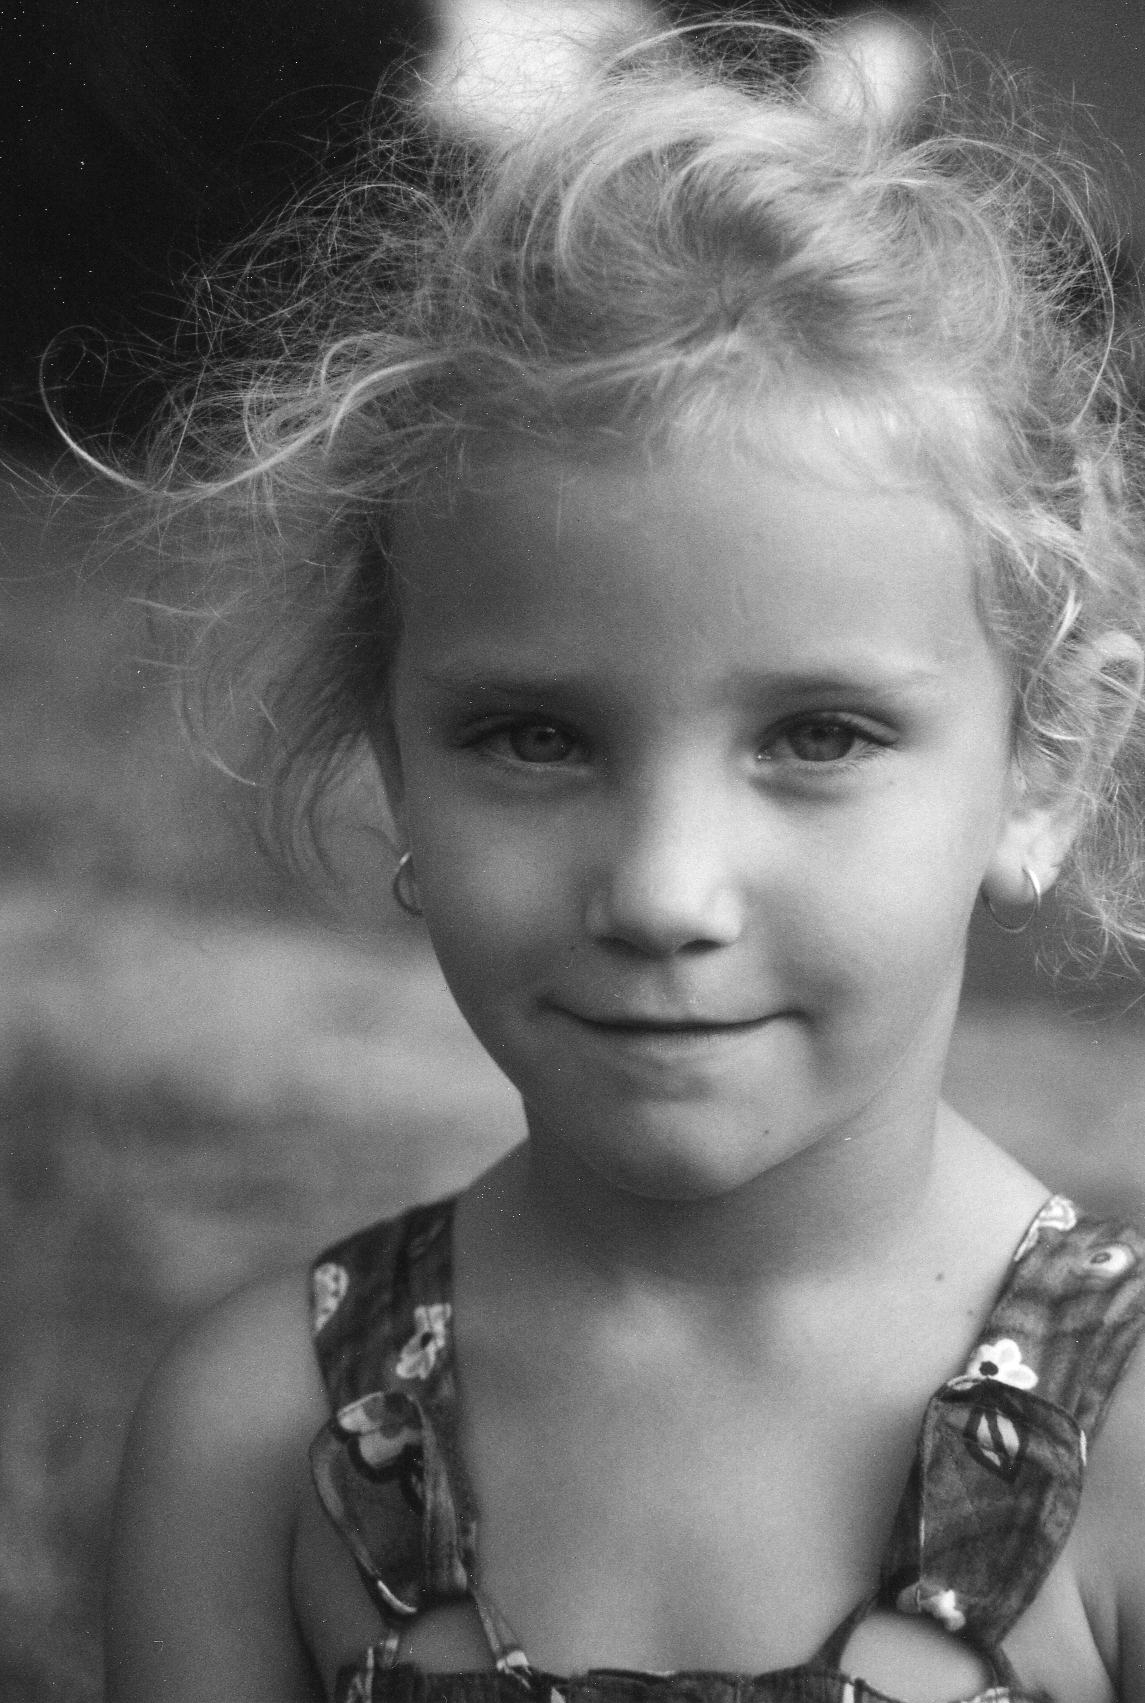 camille a 5 ans